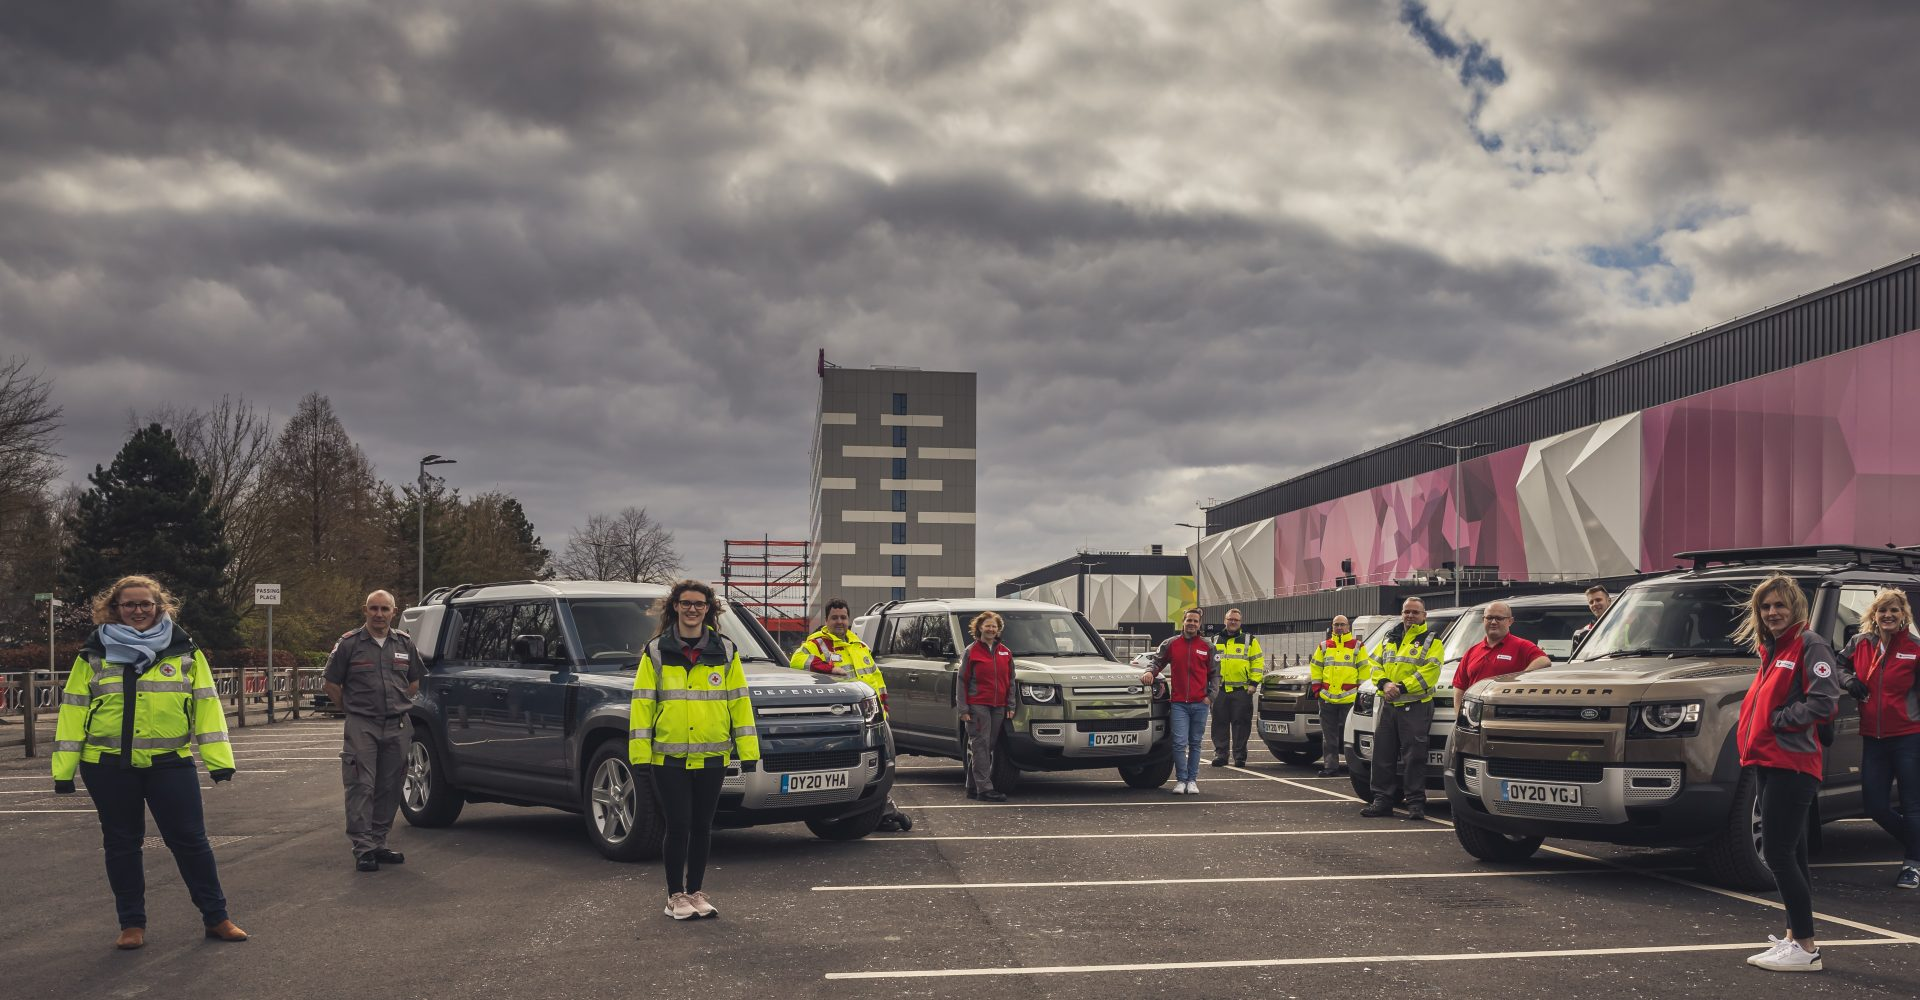 Fleet of new Defenders made available to Red Cross